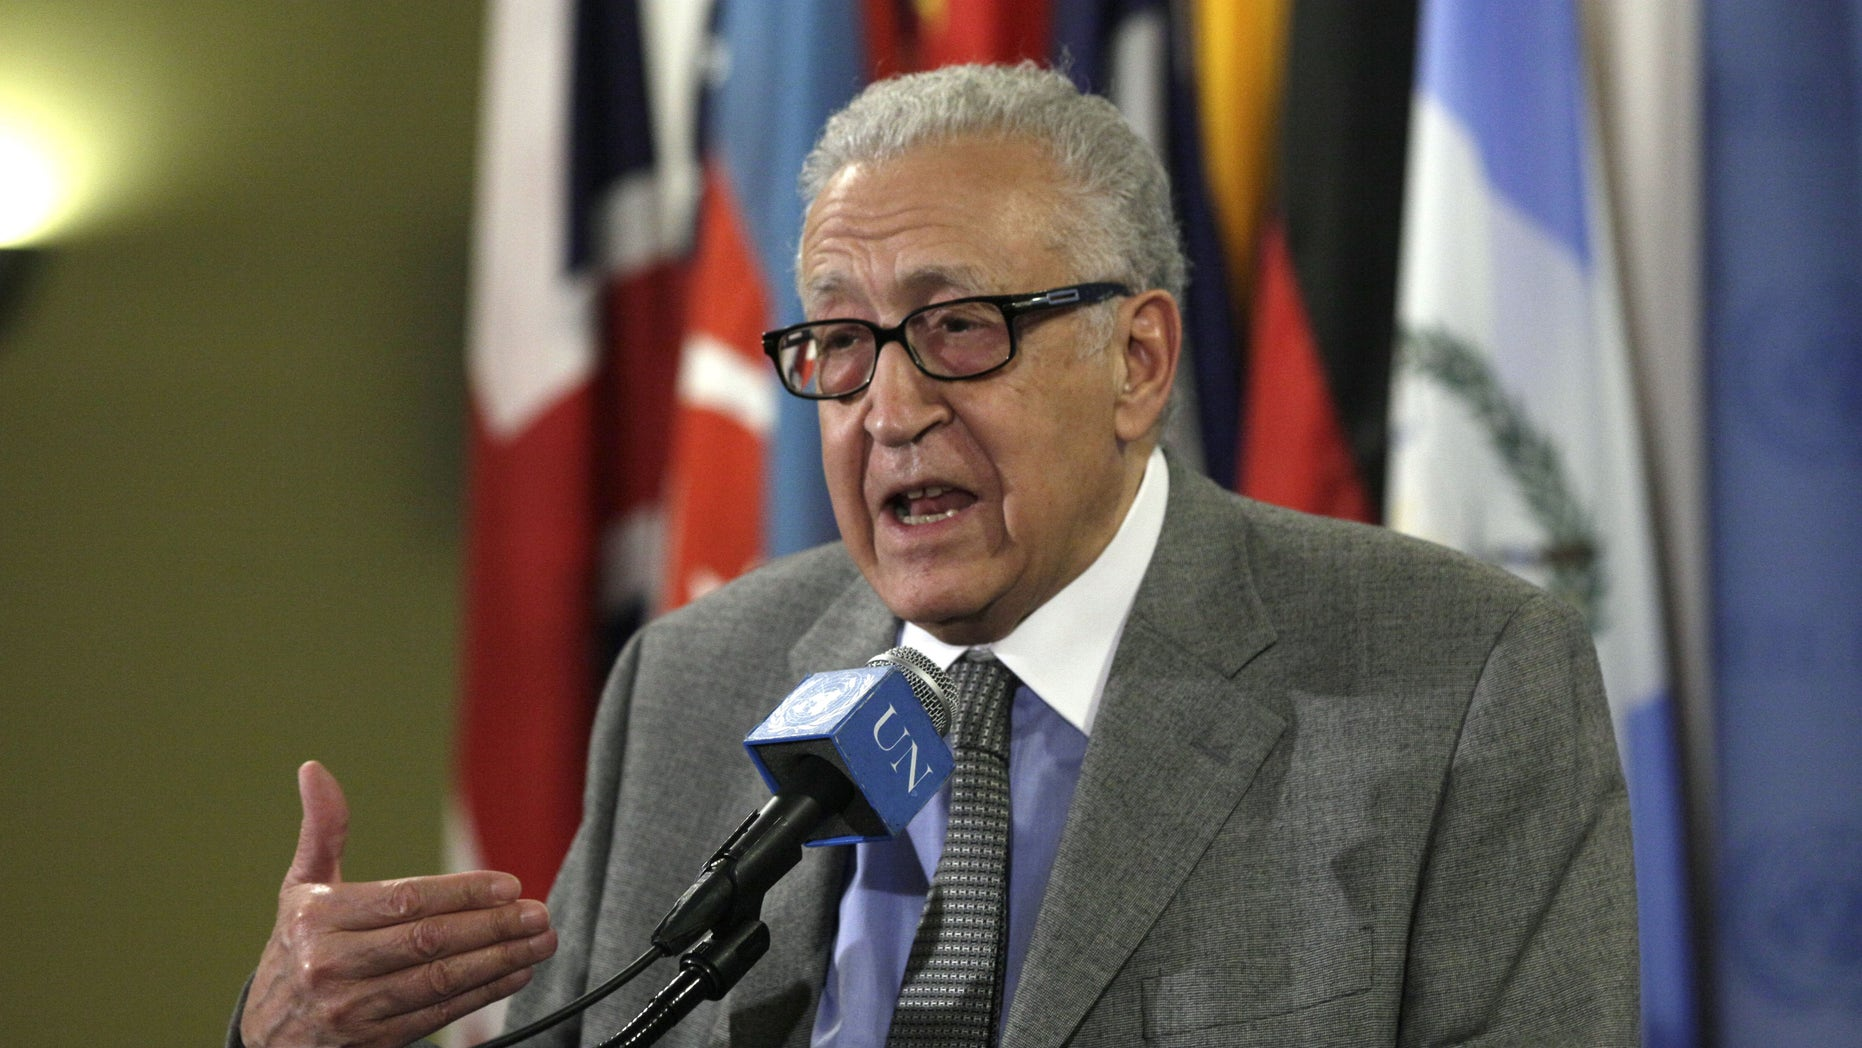 FILE - In this Nov. 29, 2012 file photo, Lakhdar Brahimi, Joint Special Representative of the United Nations and the League of Arab States for Syria, answers media questions after consultations at United Nations headquarters. A government airstrike on a bakery in a rebel-held town in central Syria killed more than 60 people, activists said, casting a pall over a visit by Brahimi, the international envoy charged with negotiating an end to the country's civil war. (AP Photo/Richard Drew, File)